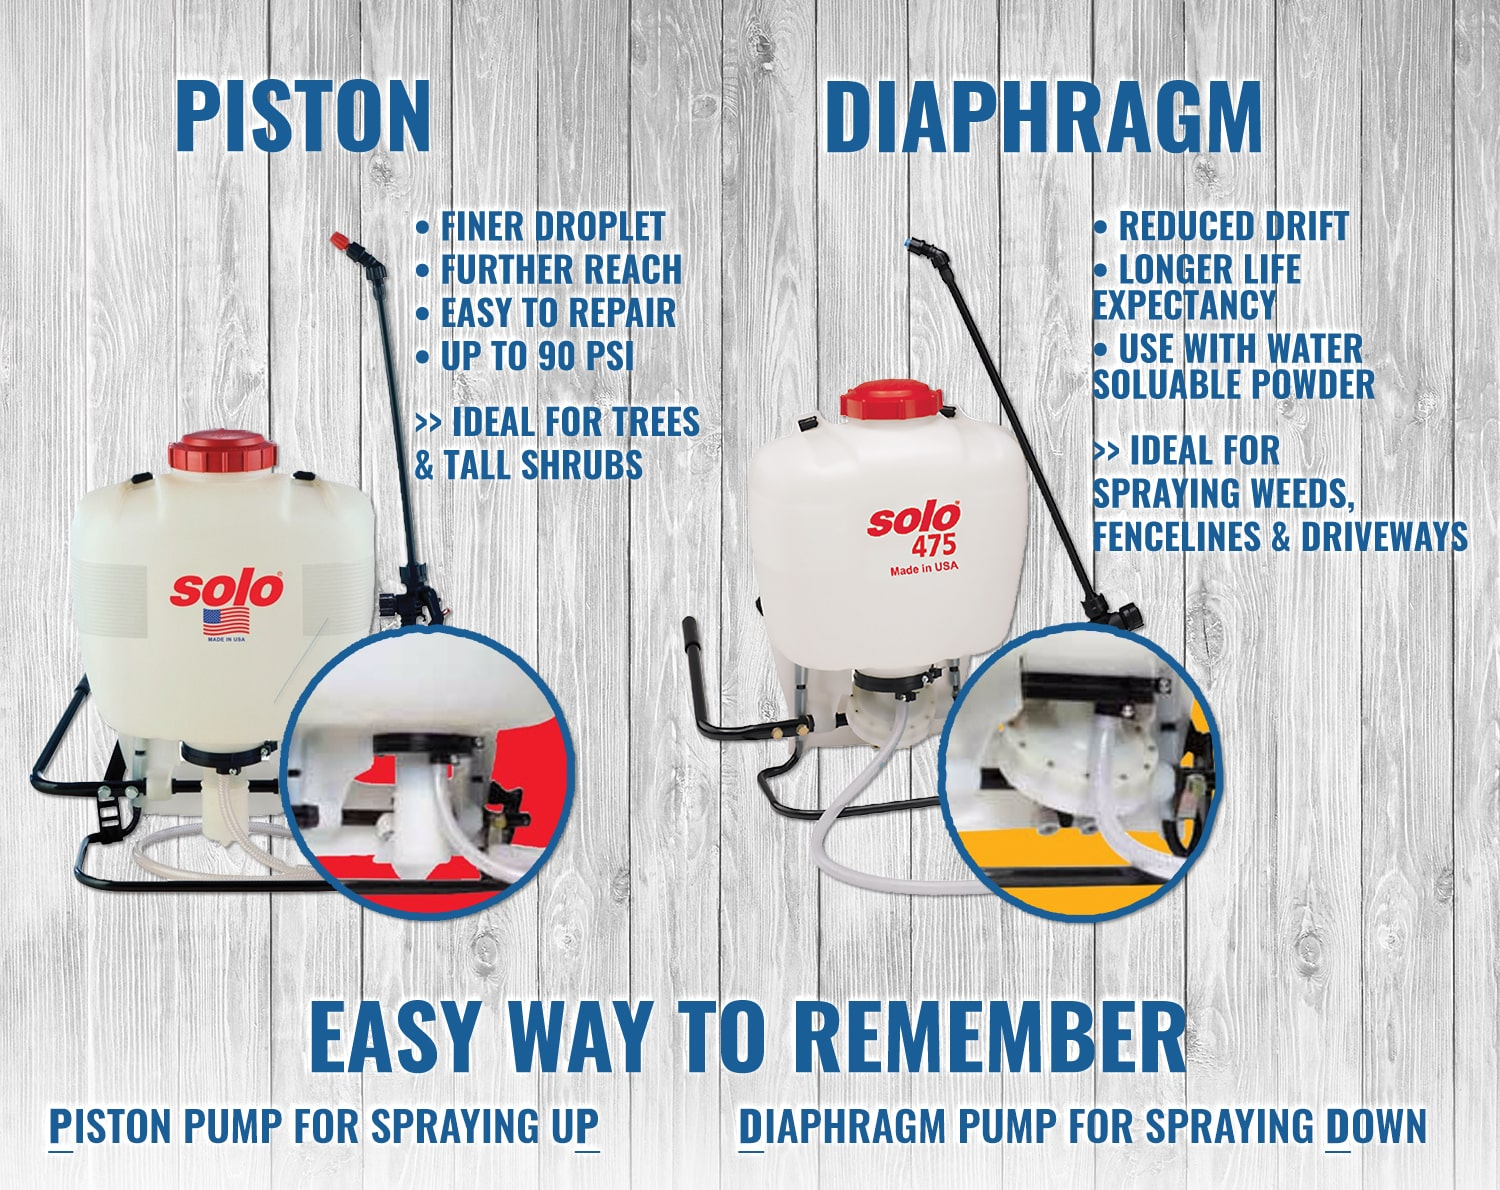 Backpack Sprayer Comparison-Piston Diaphragm